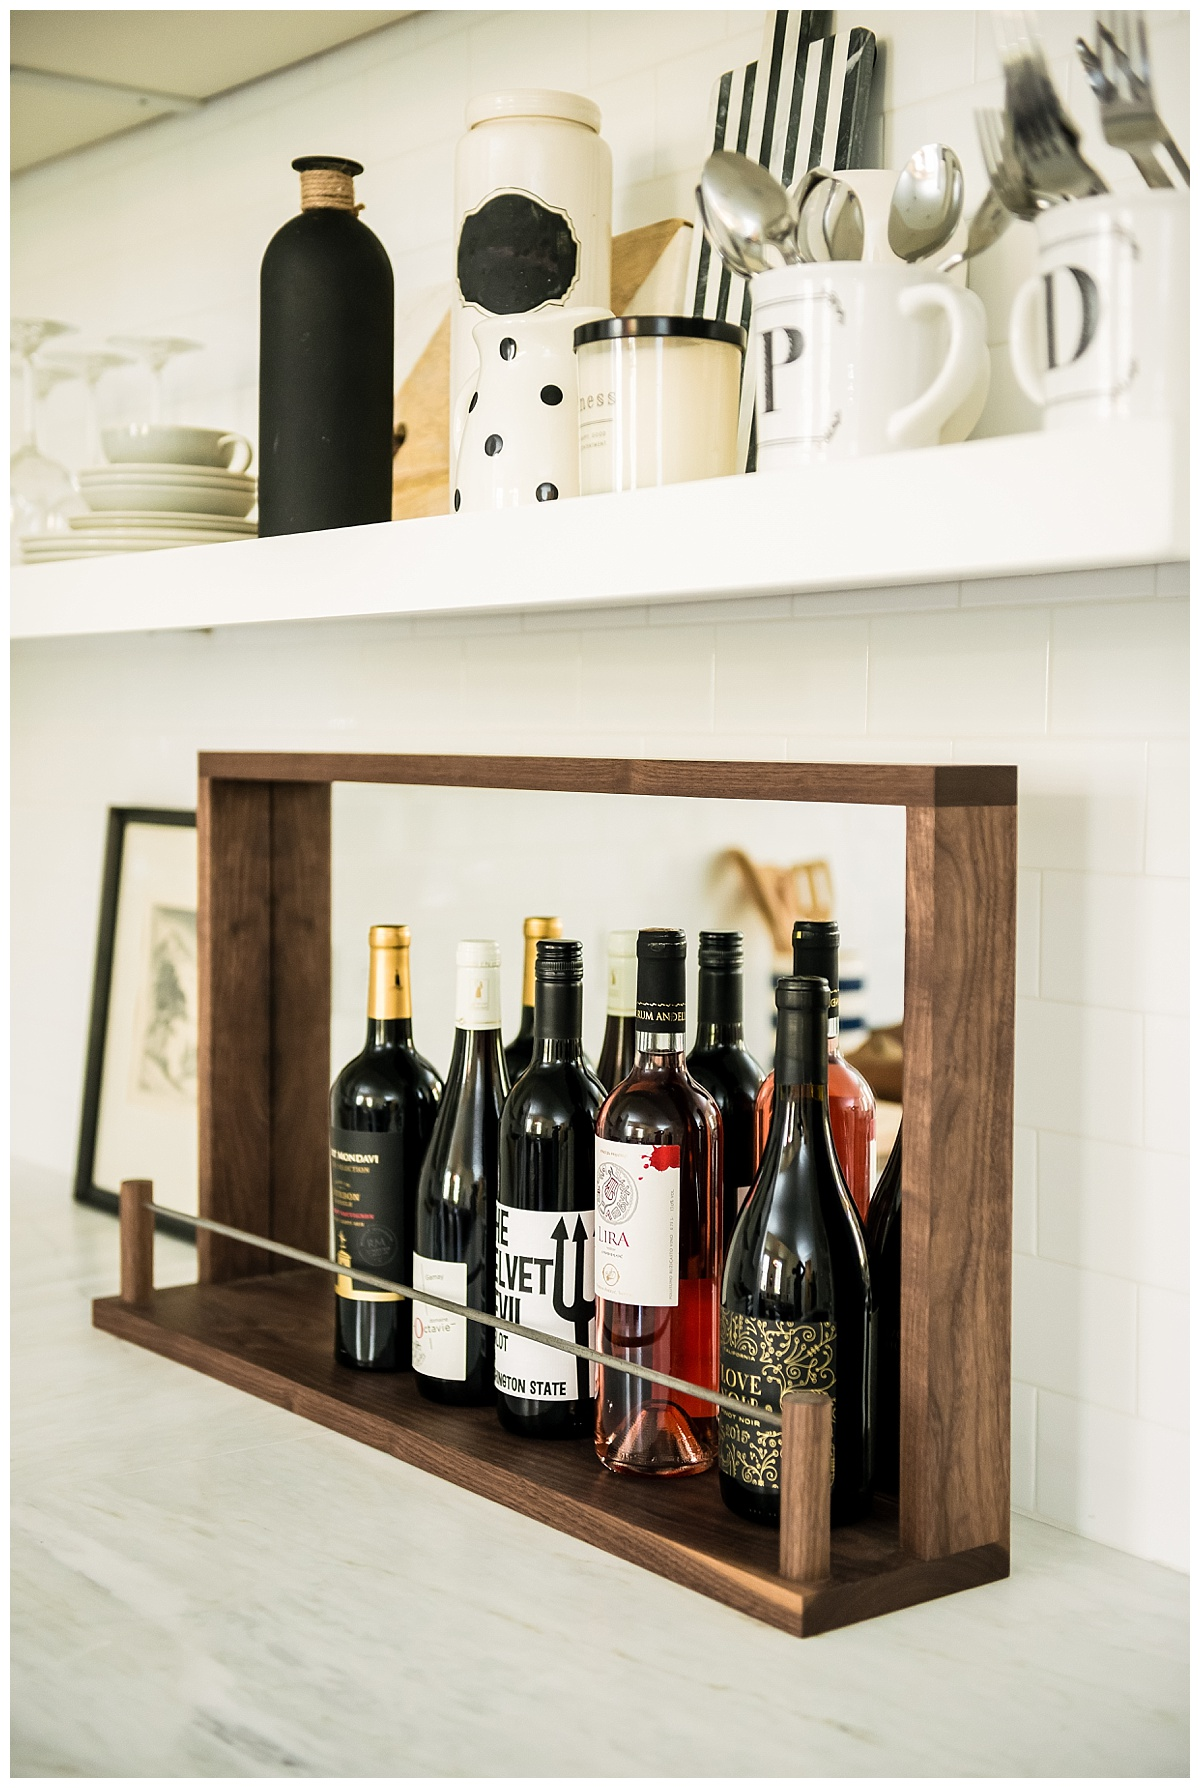 'The Top-Shelf,' our mirrored, walnut + steel shelf, specifically designed to showcase your favorite wine and spirits. Walnut, our most sought-after wood, is known for its long-lasting durability, as well as its rich, beautiful tones, grains, and figure. Treat yourself, or purchase as a thoughtful gift for the cocktail connoisseur or the sentimental minimalist in your life. | Lemiga Events | Host + Toast